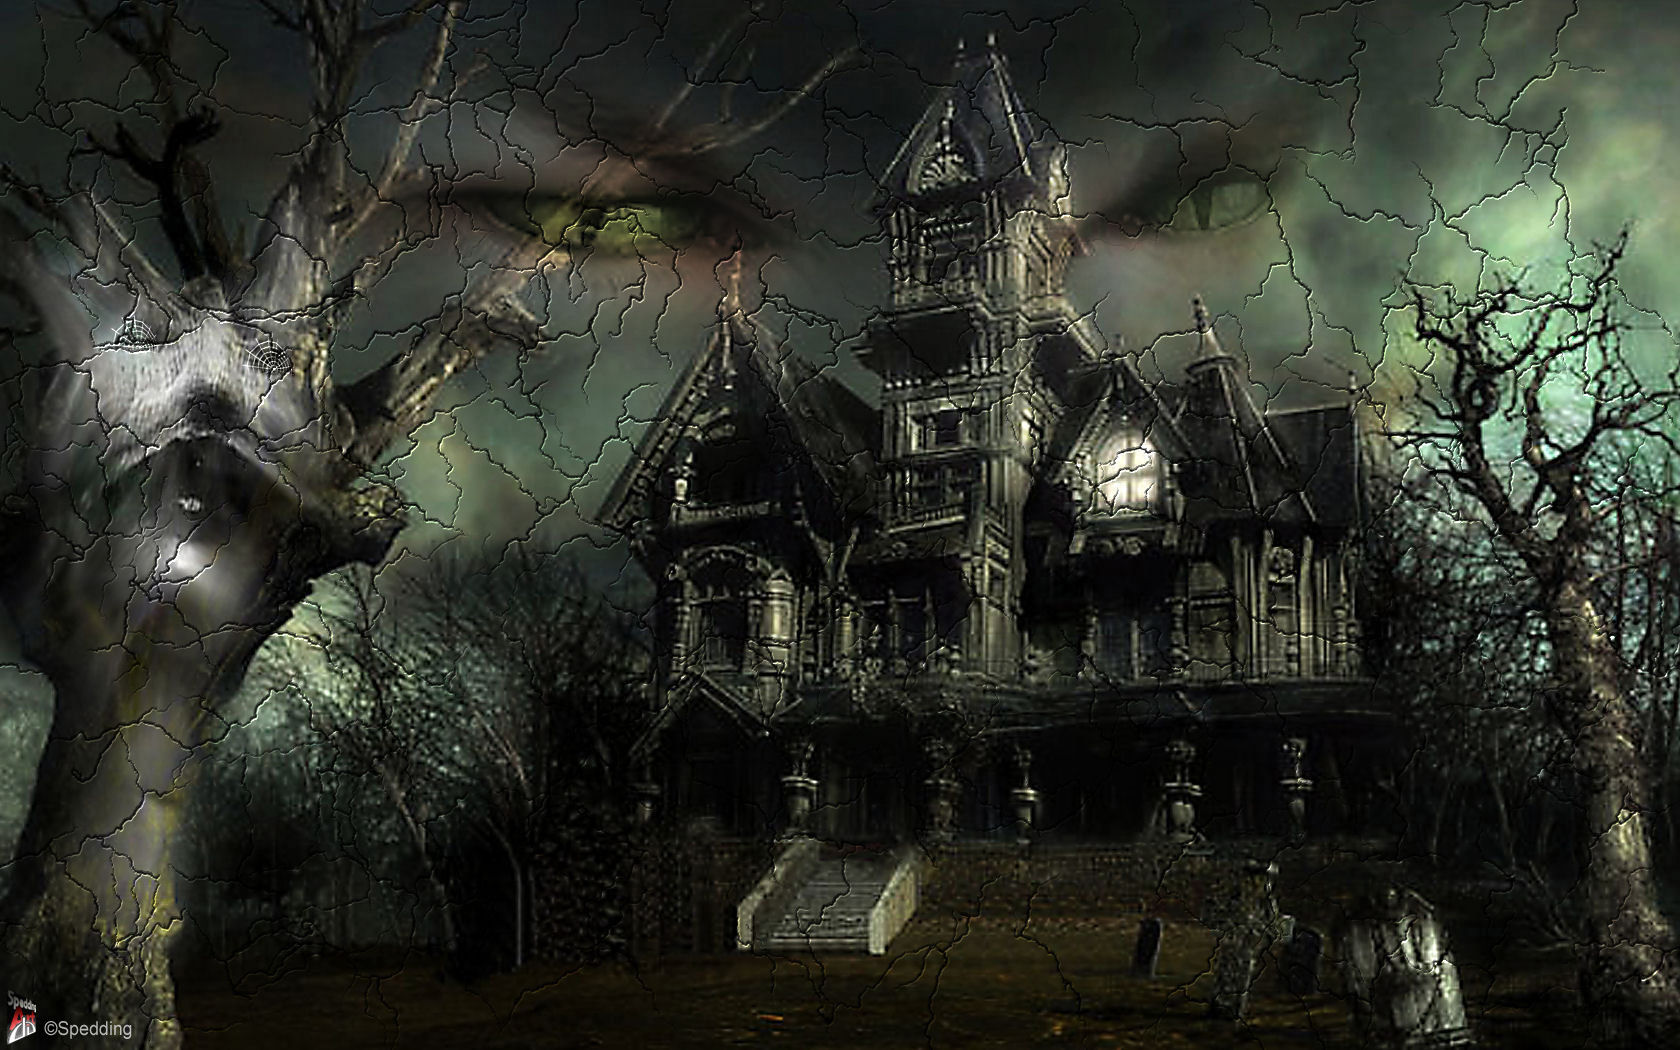 haunted house wallpaper with sound - photo #49